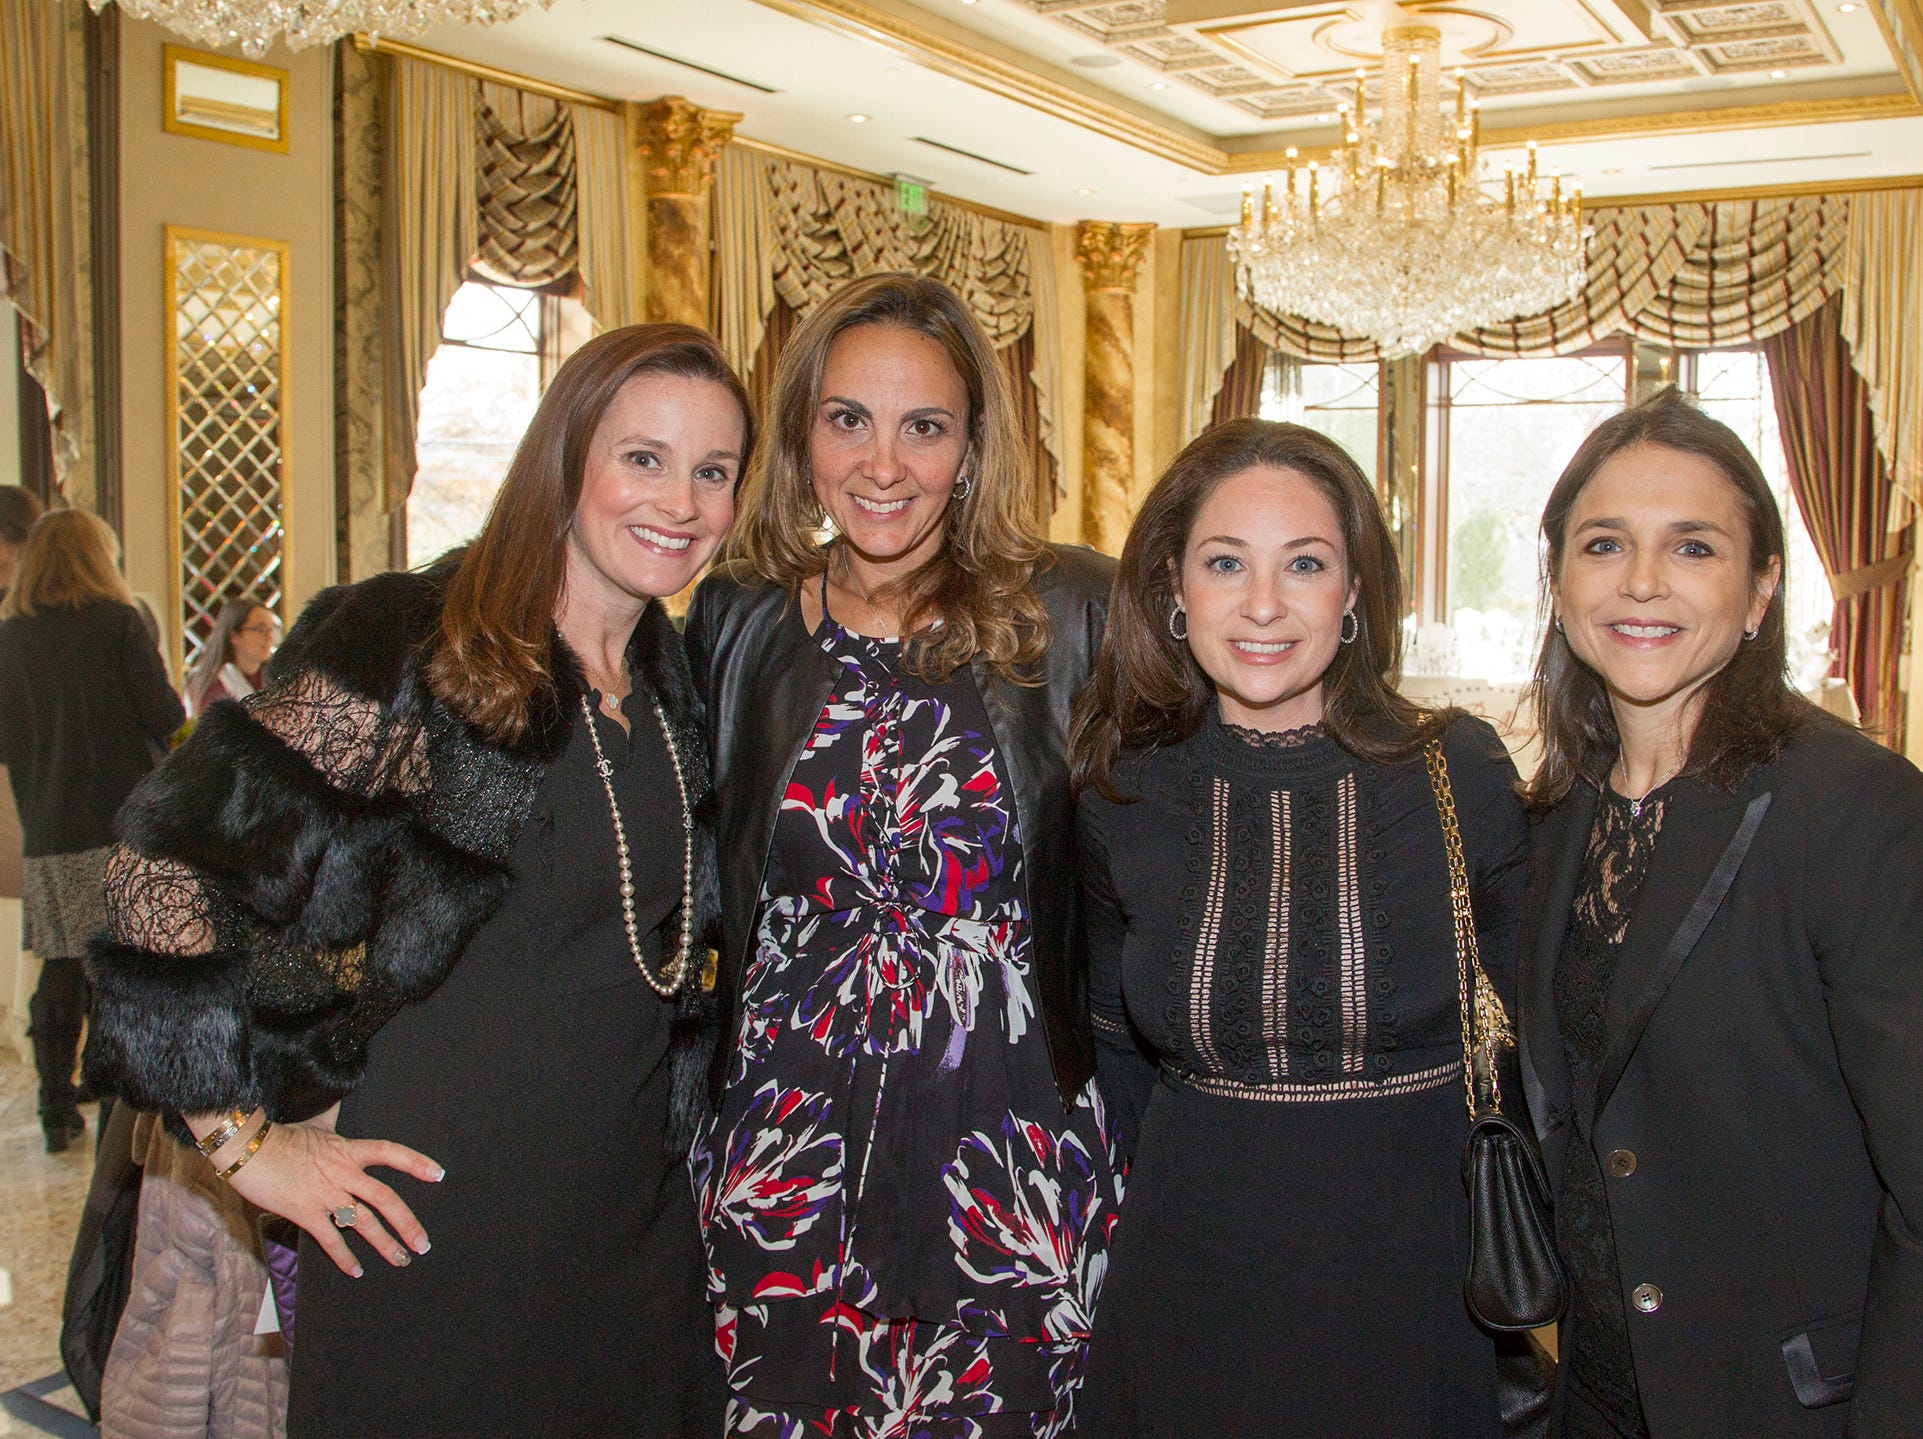 Bernadette Colonna, Lisa Marchiano, Jaime Fernino, Linda Spilka. Josephine's Garden, part of Hackensack Meridian Health, held its luncheon gala at Season's in Washington Township. The mission of this organization is to provide a place of respite, joy and hope to children battling cancer. 11/14/2018